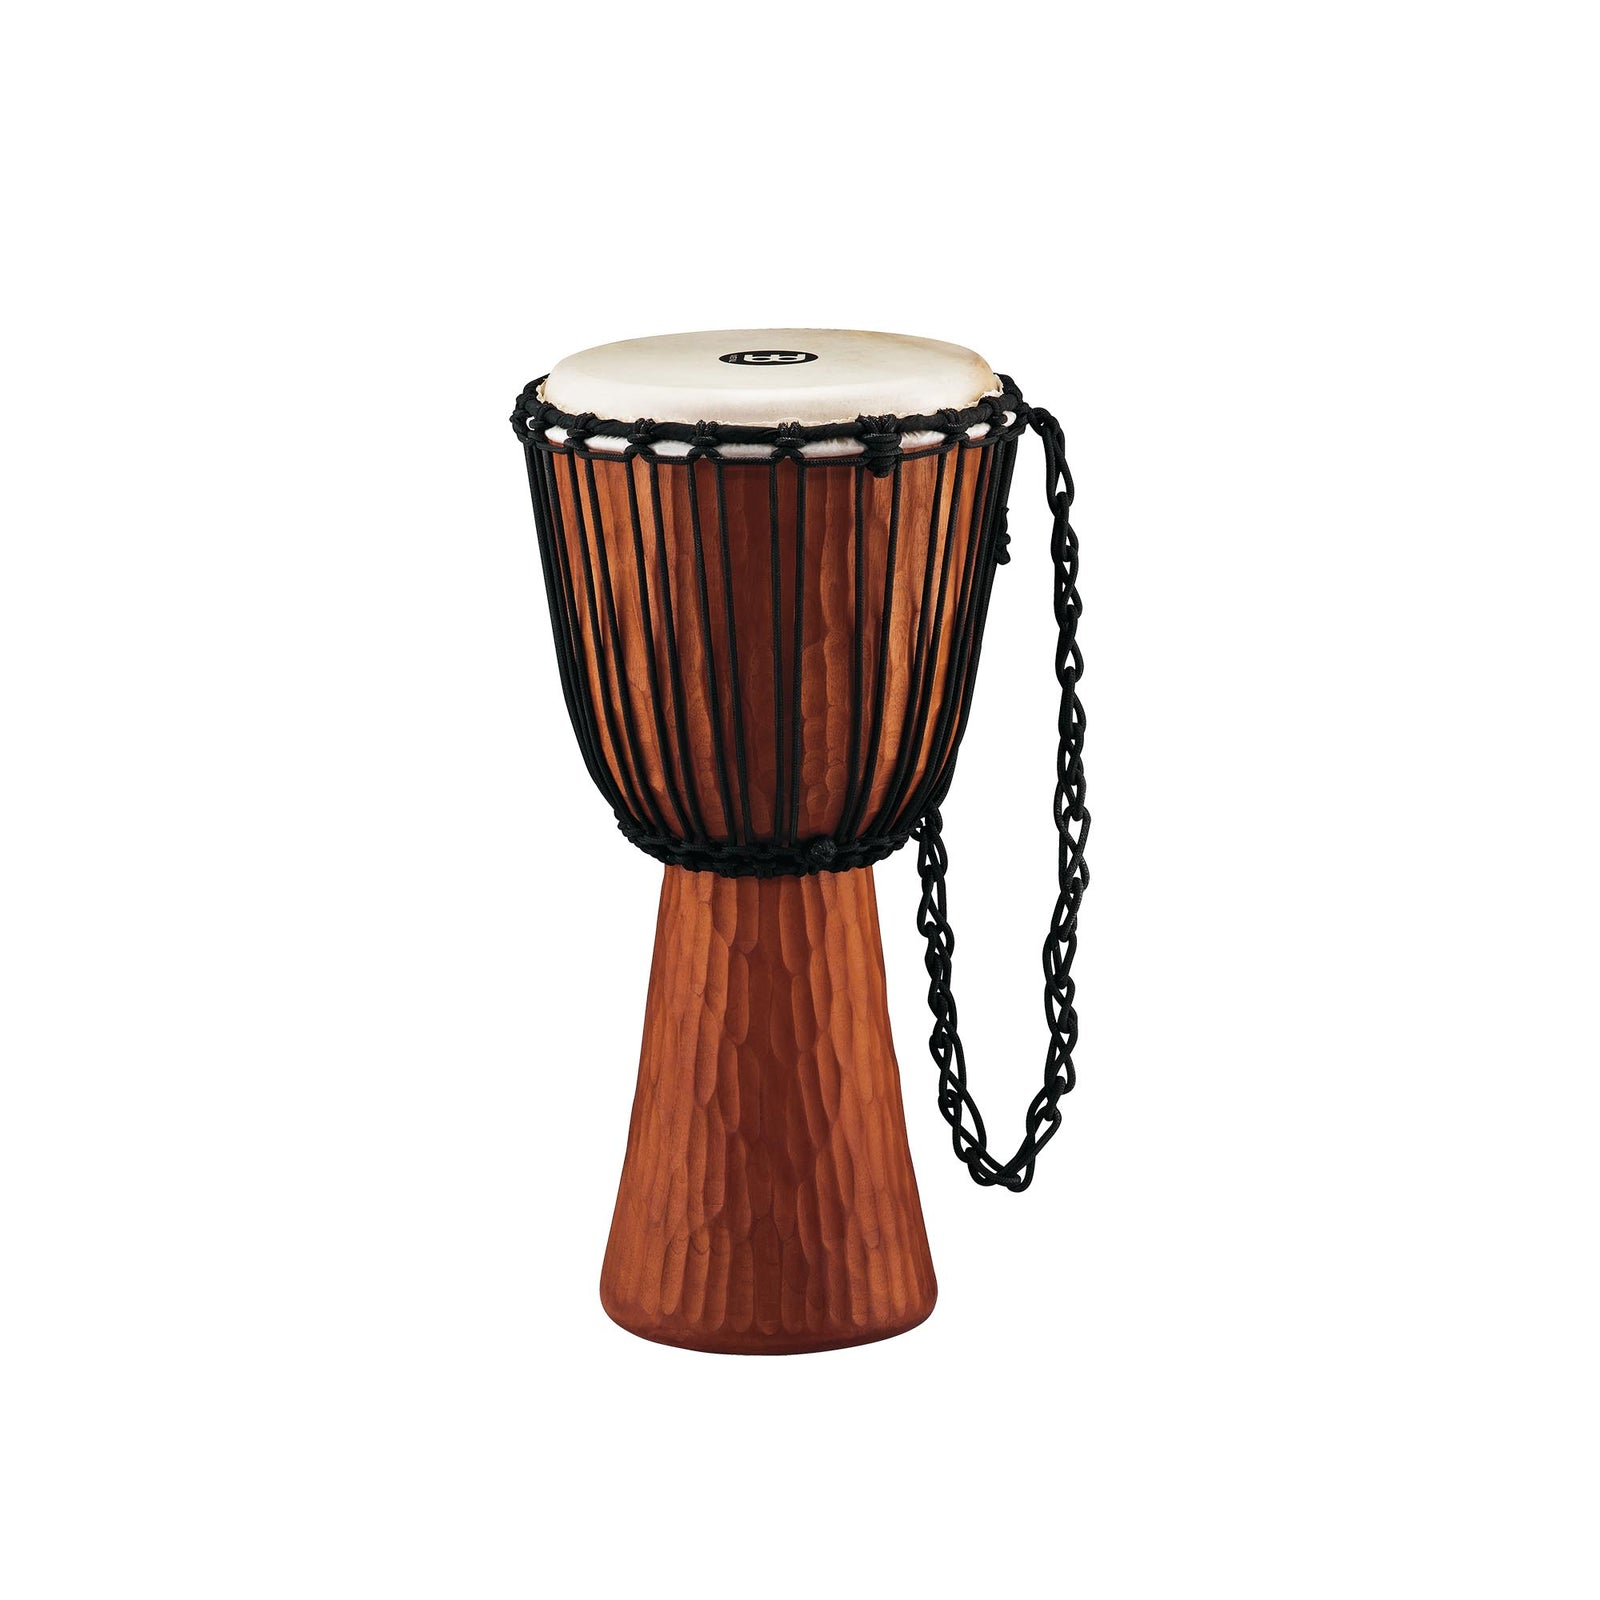 "Meinl 12"" Nile Series Rope Tuned Djembe"